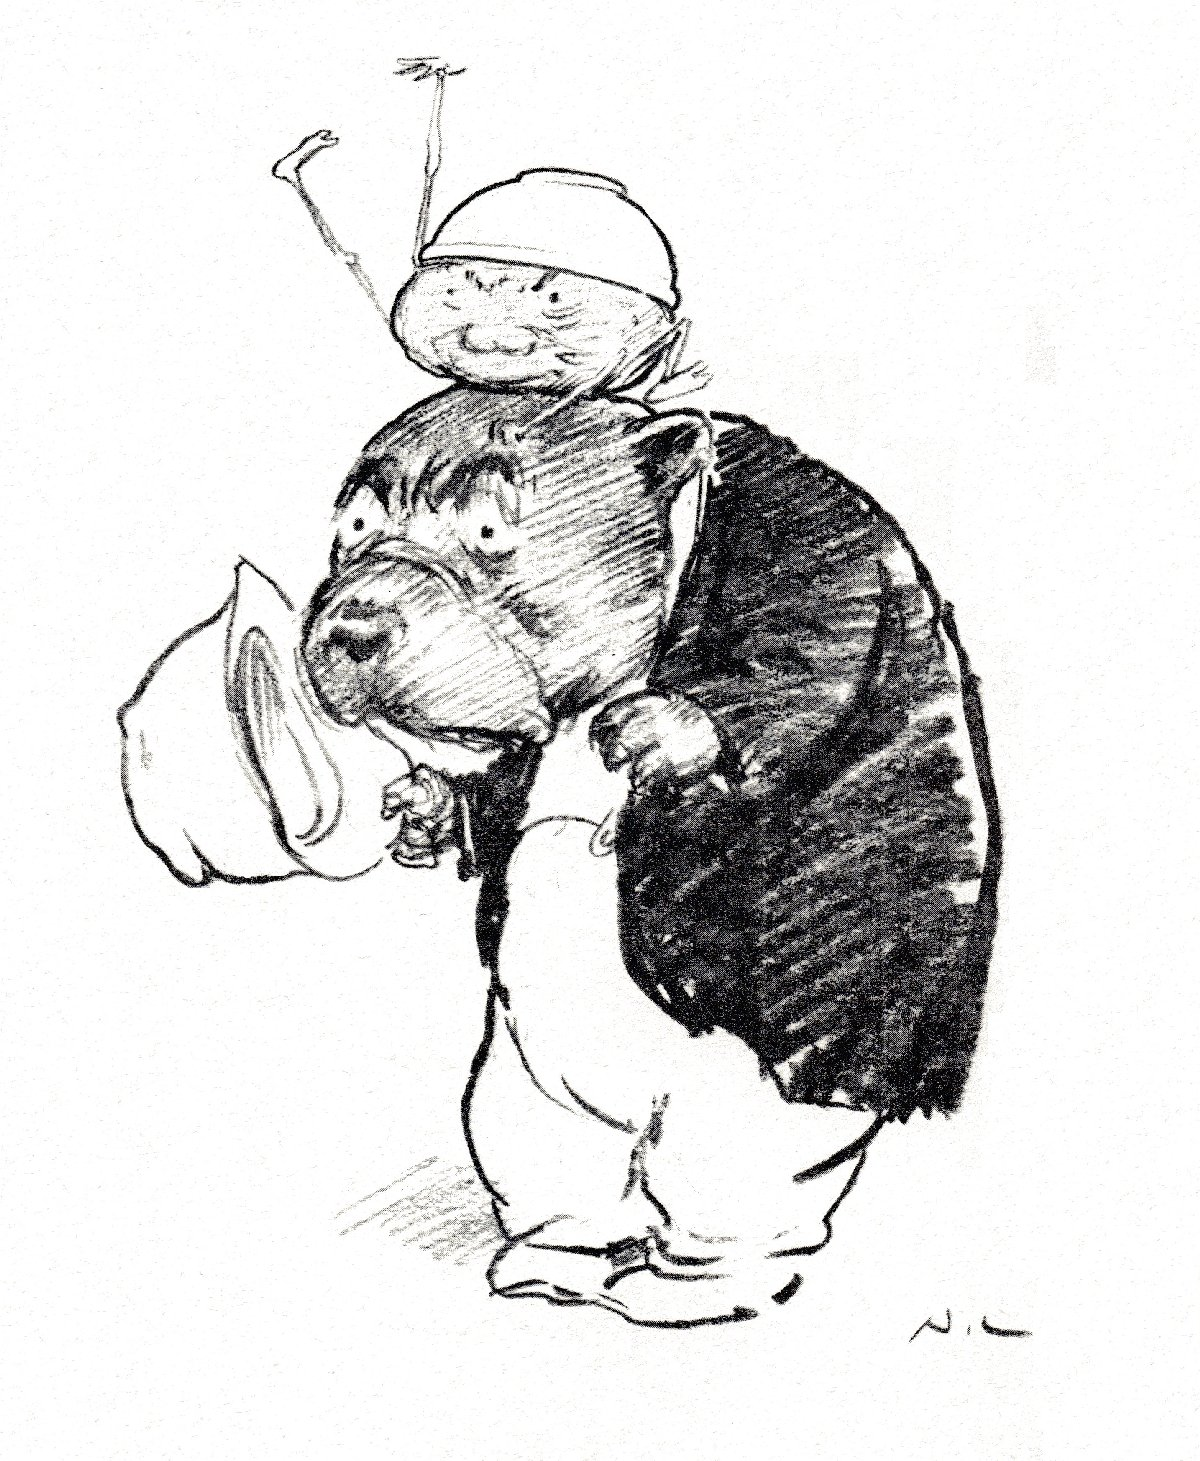 cartoon figures : pudding with stick appendages on wombat's head